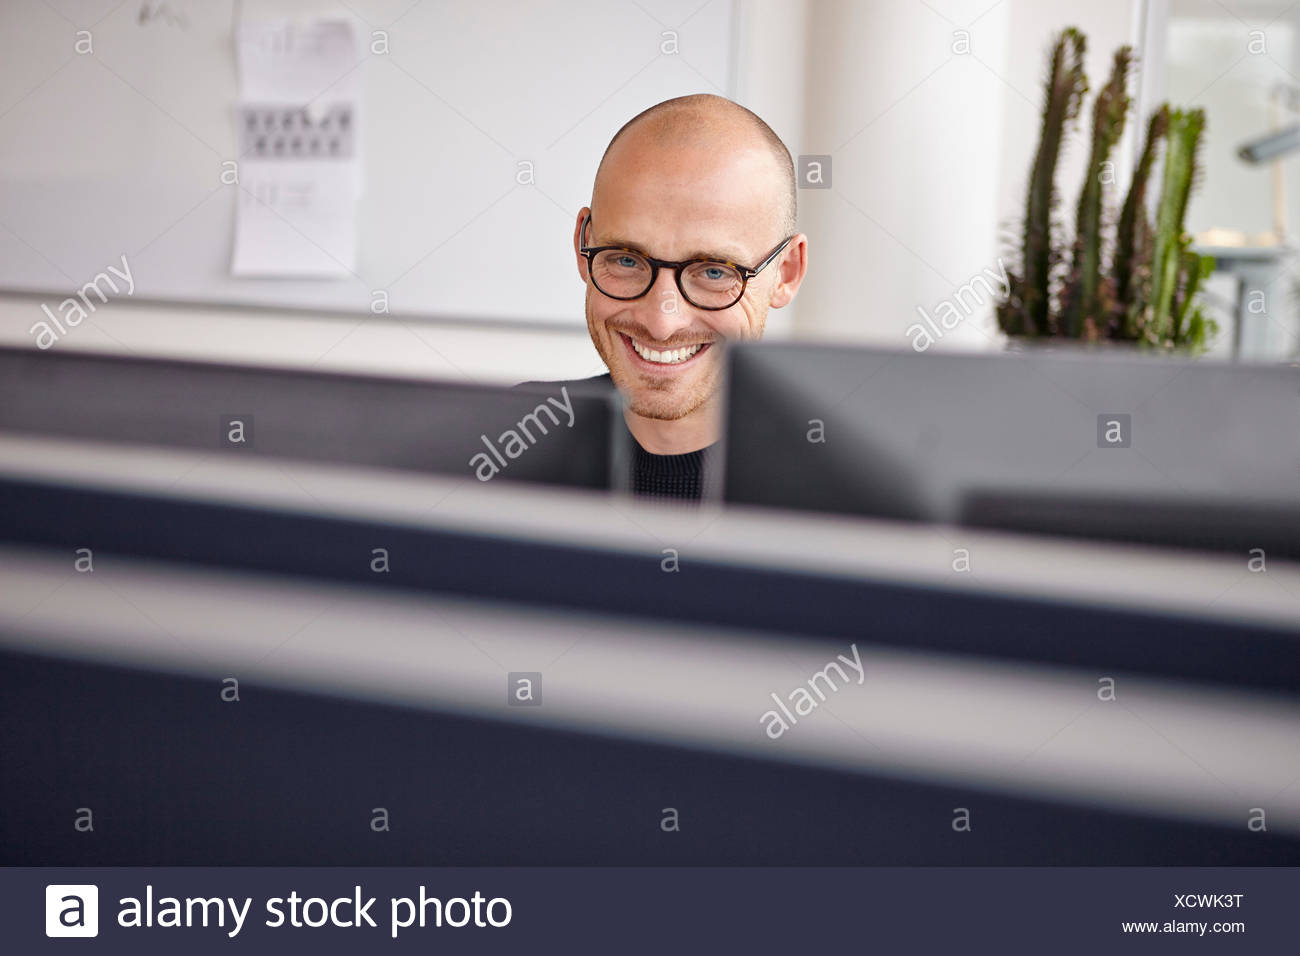 Smiling man in office behind computer screens - Stock Image